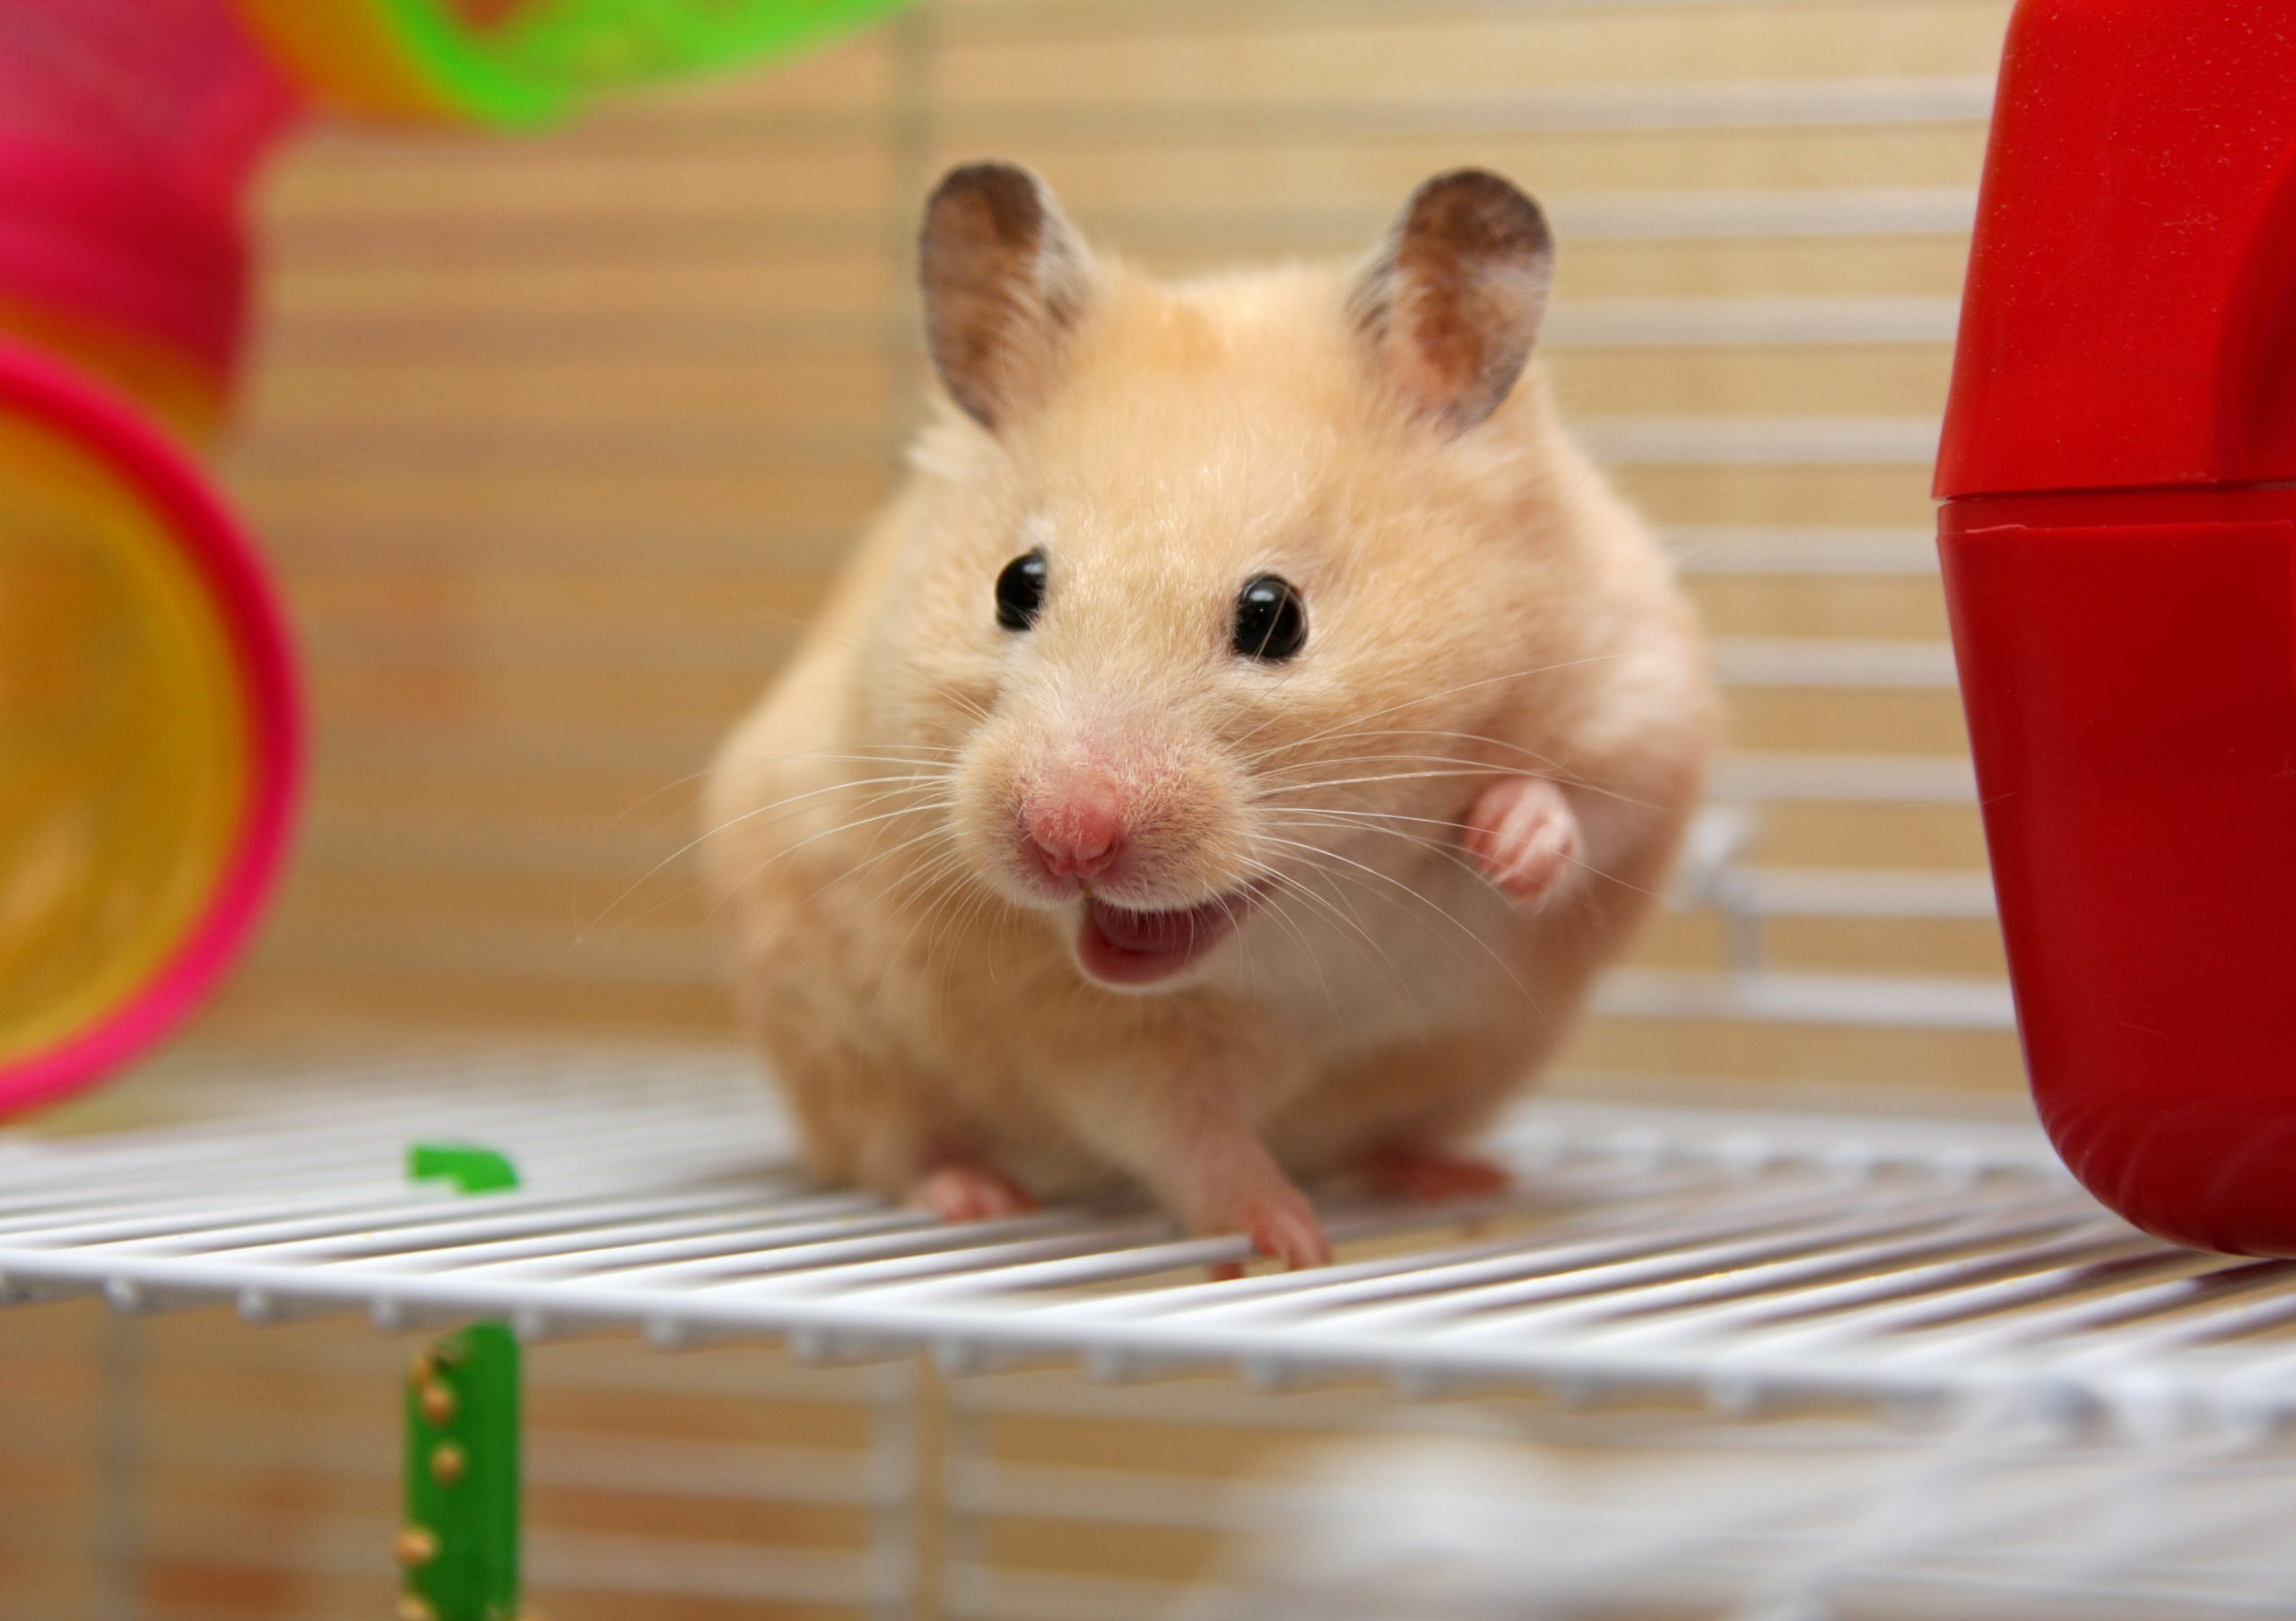 A cream colored hamster with its mouth open in its cage